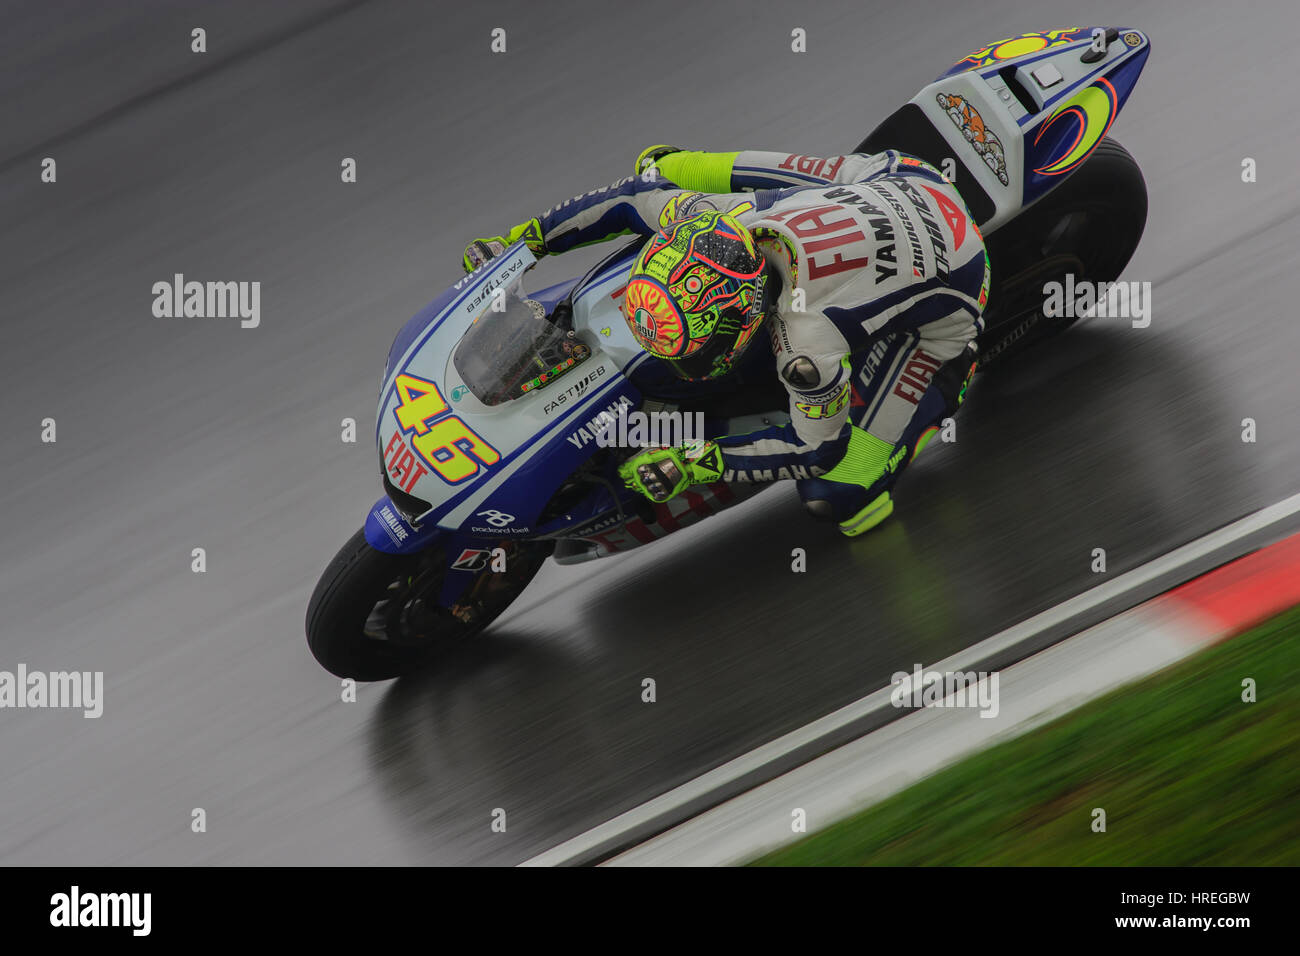 valentino rossi weltmeister